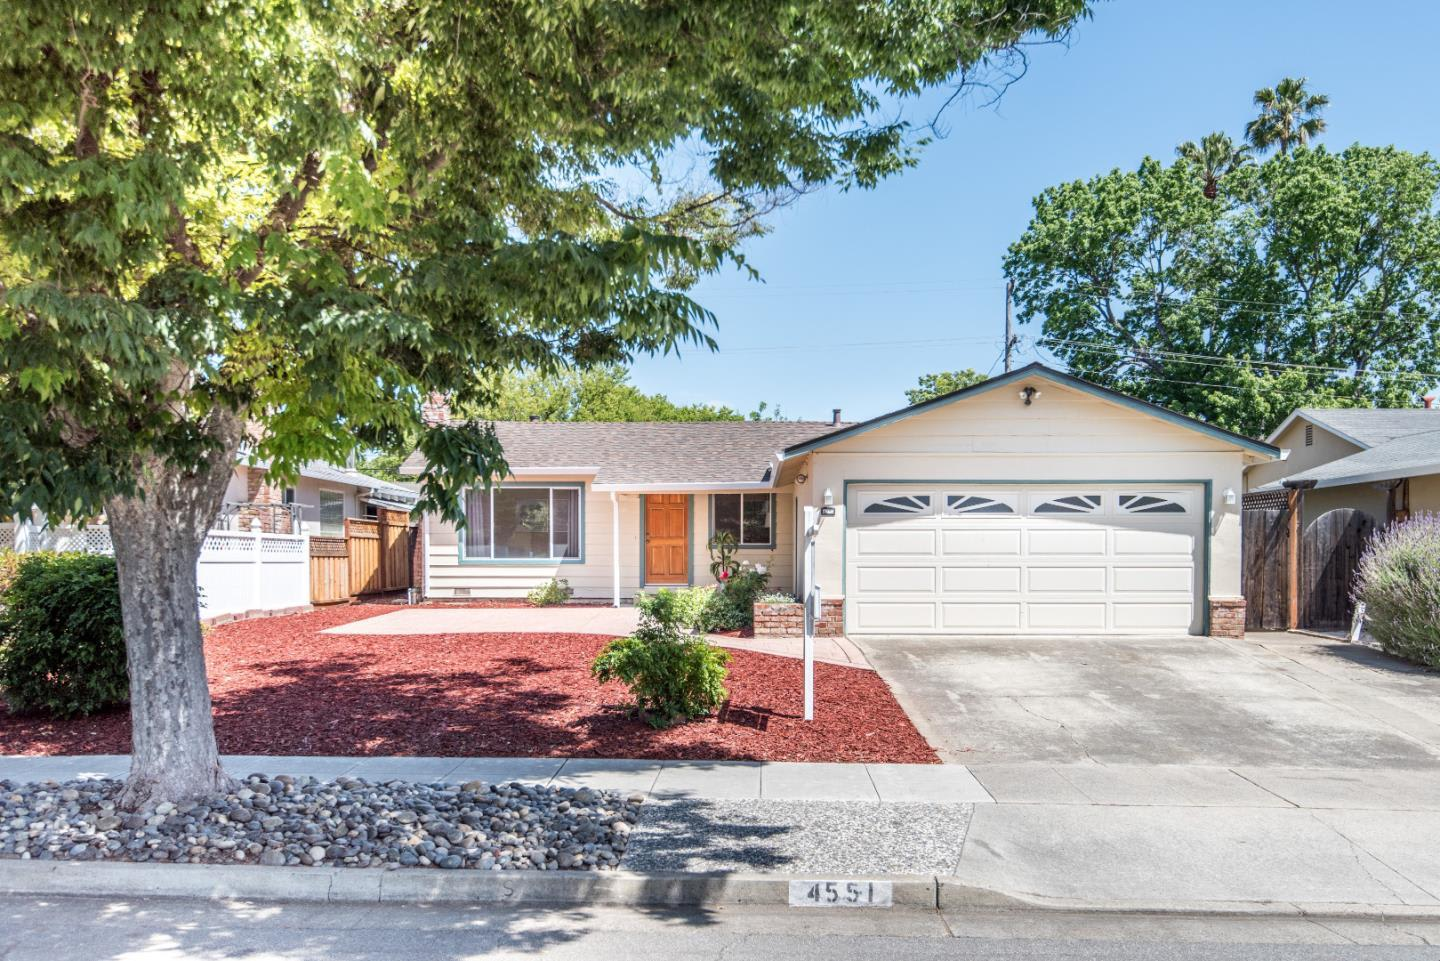 4551 Grimsby Dr photo